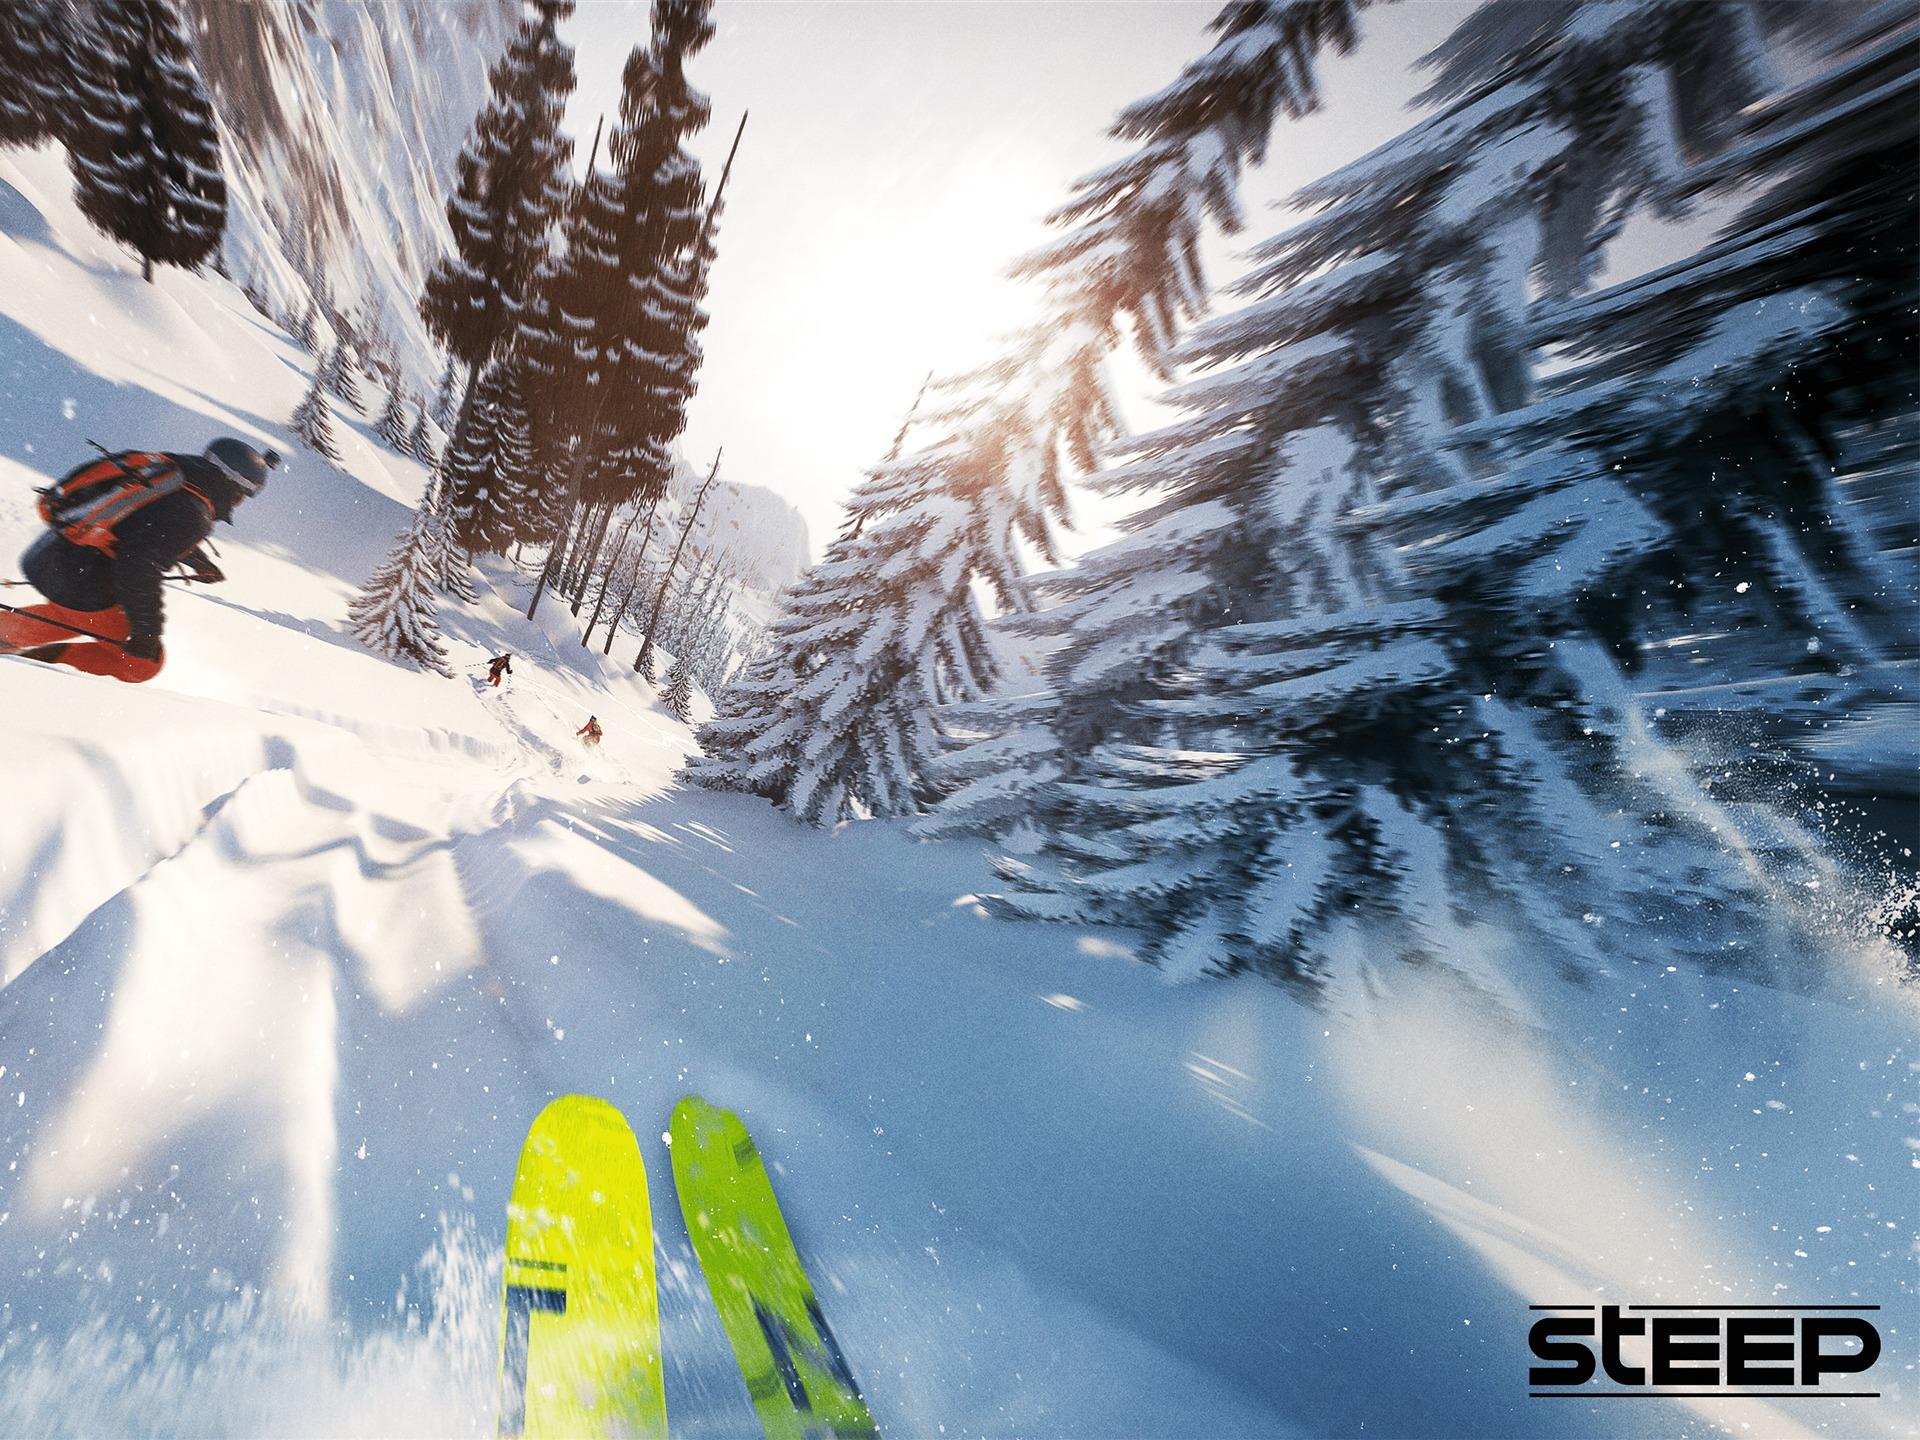 Ski competition Steep Game 4K - 1920x1440 wallpaper download